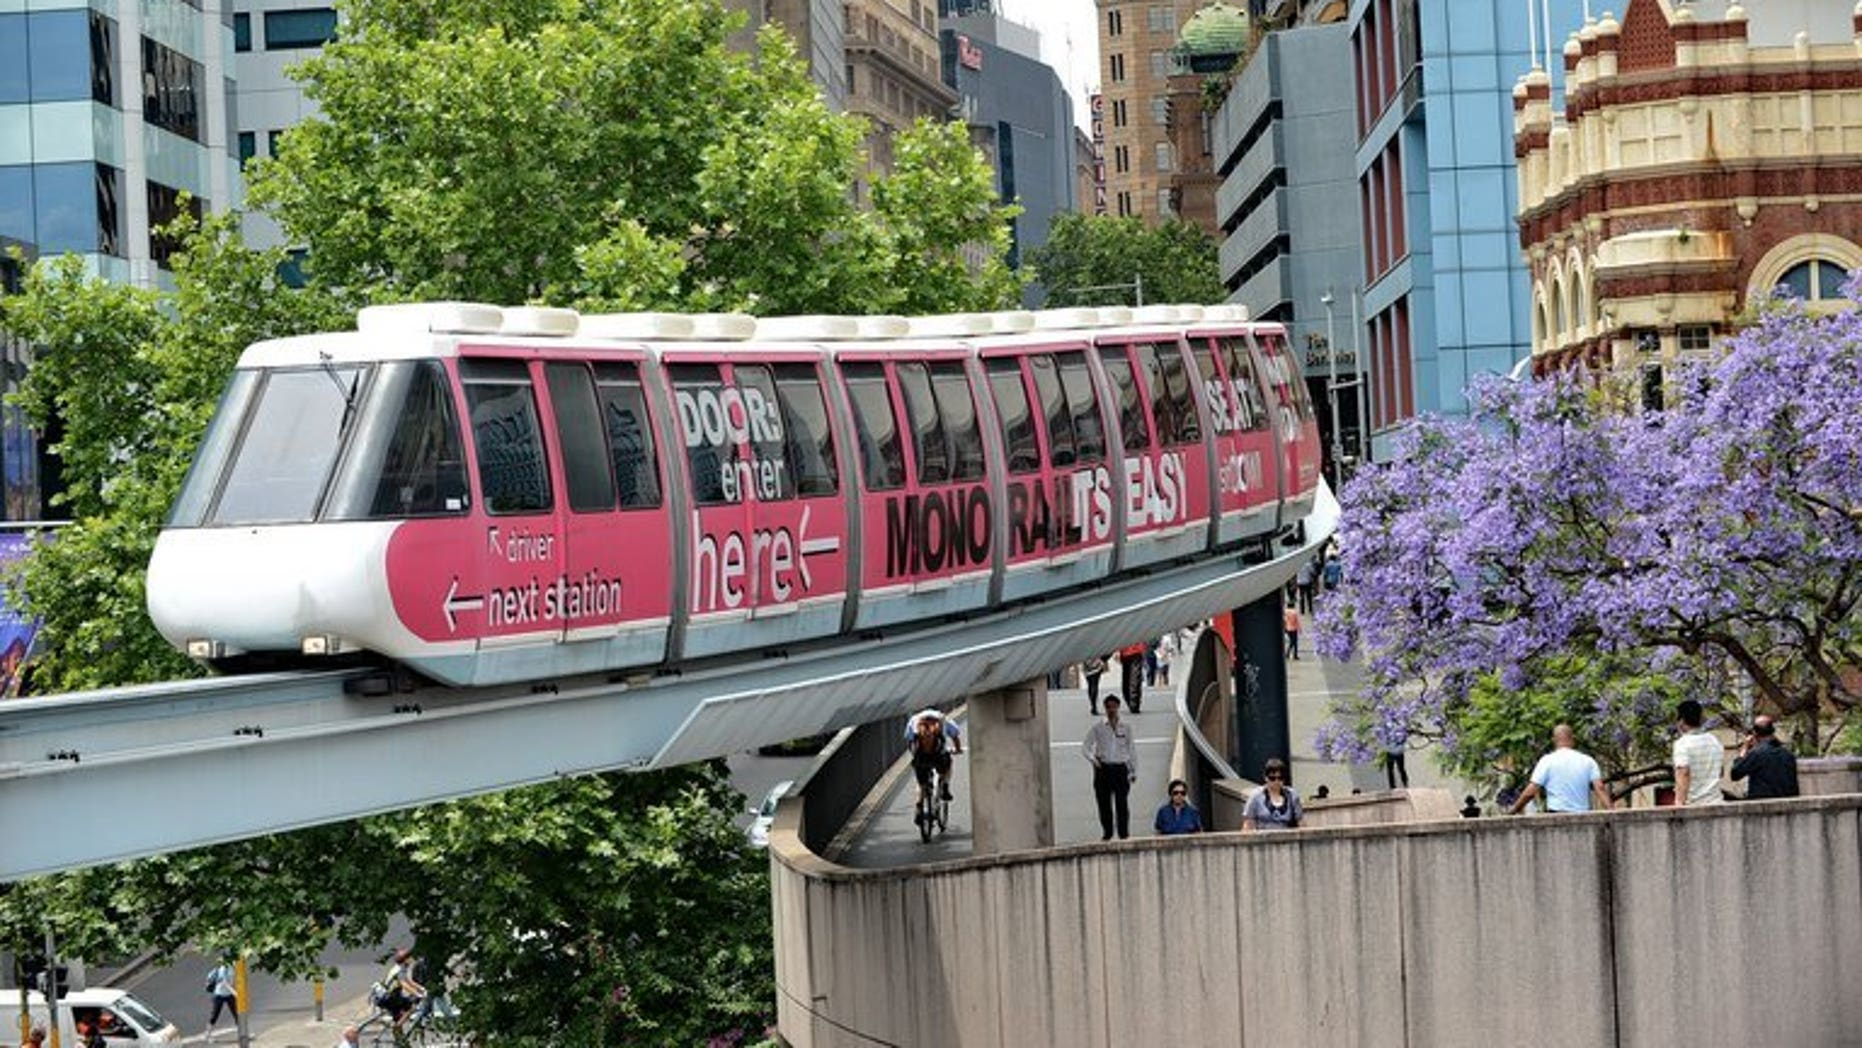 A monorail carriage heads towards Darling Harbour in downtown Sydney on November 9, 2012. The New South Wales state government announced in March that the controversial above-ground rail link would be pulled down.